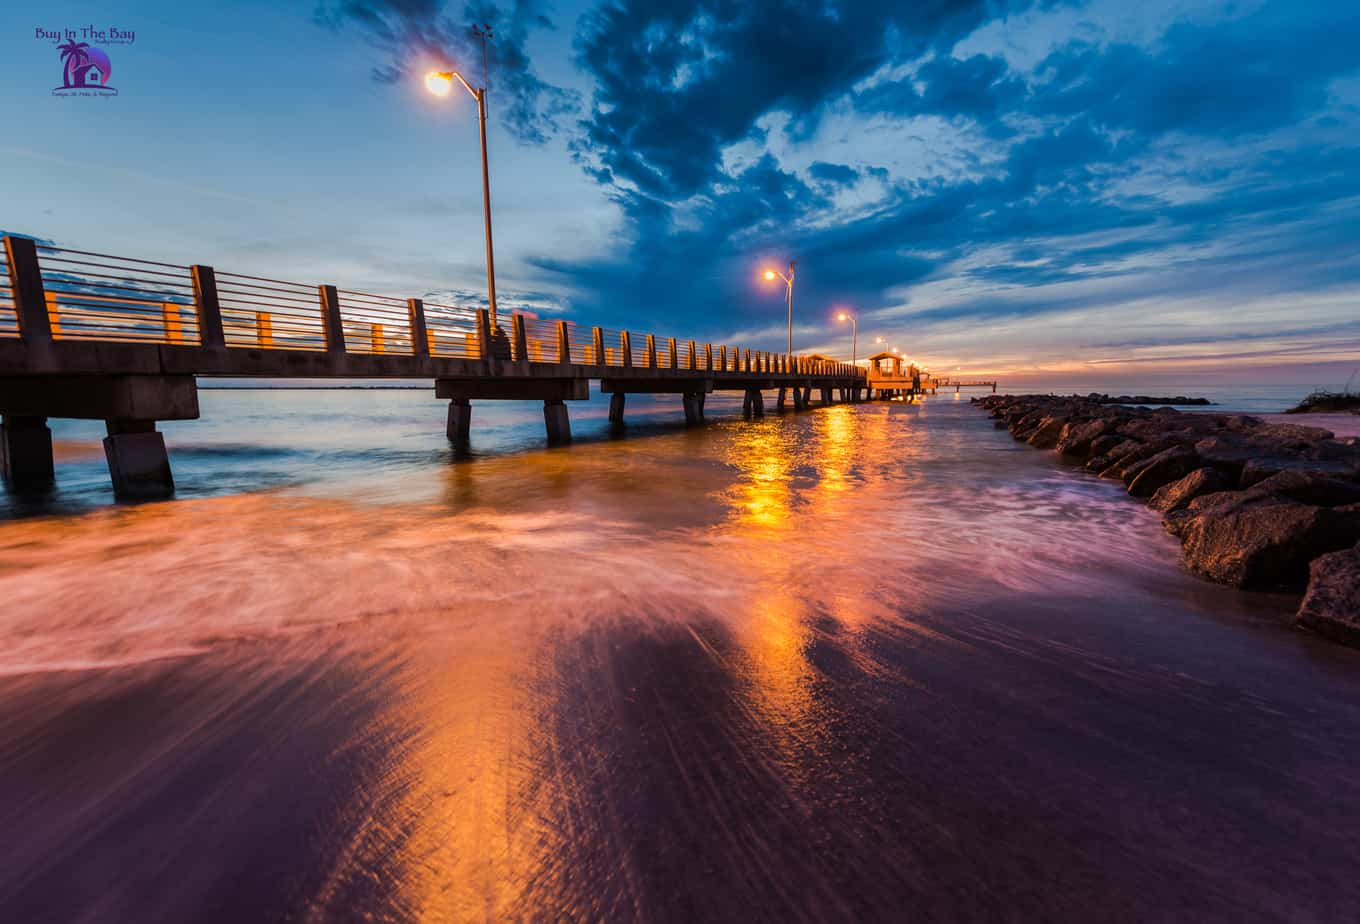 Fishing pier with beautiful sunset over multicolored water for the showcase image showing Tierra Verde FL real estate for 33716 showing homes for sale 33716